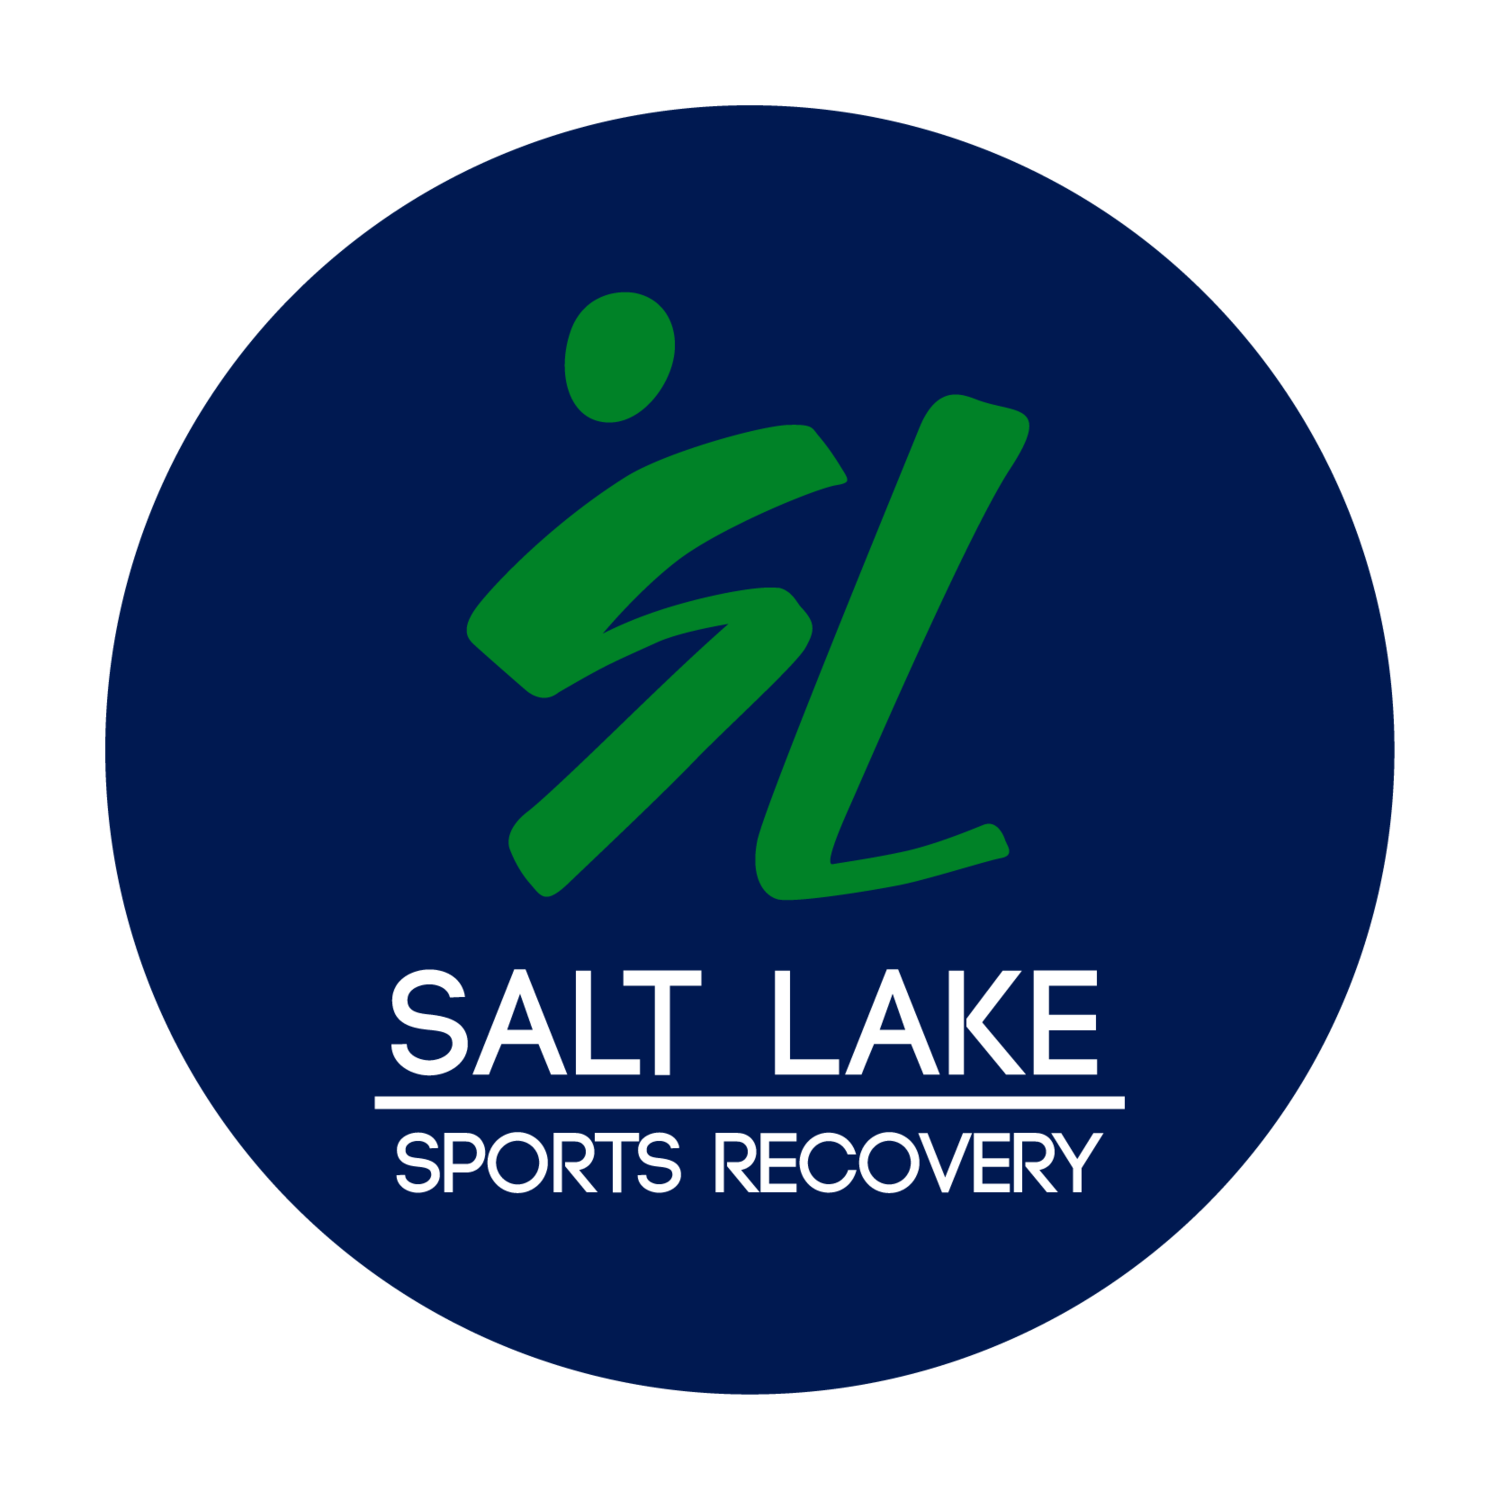 Salt Lake Sports Recovery